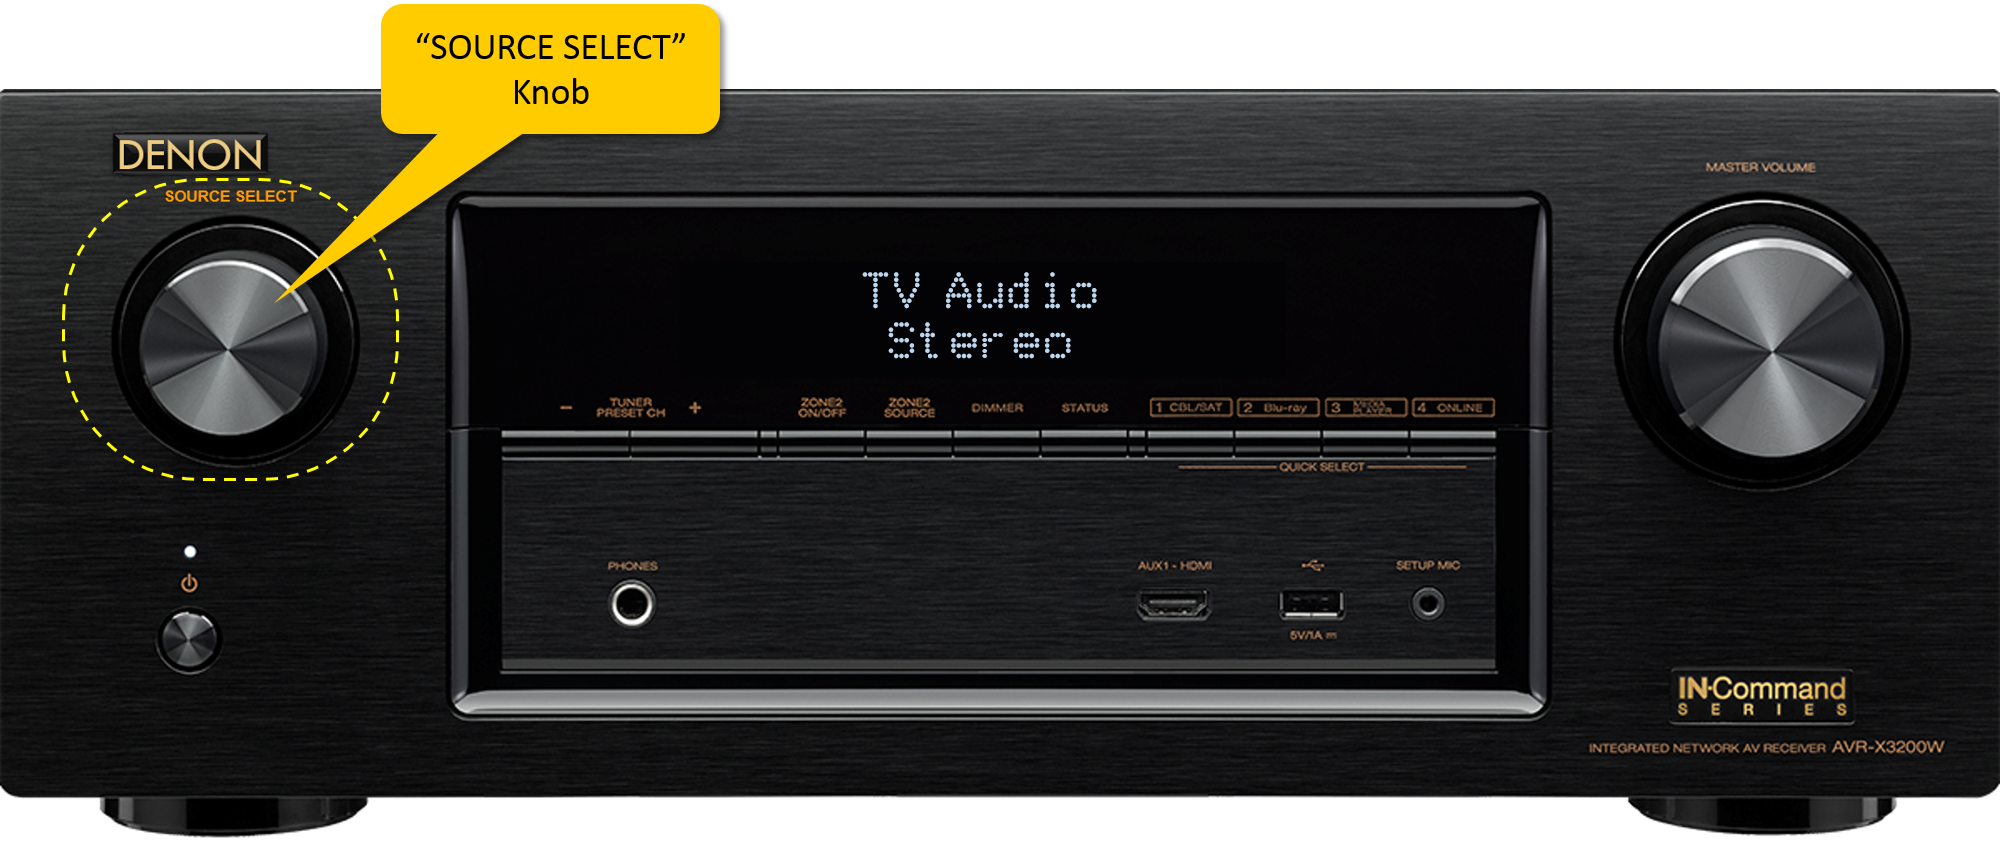 Playing TV Audio Through the AV Receiver